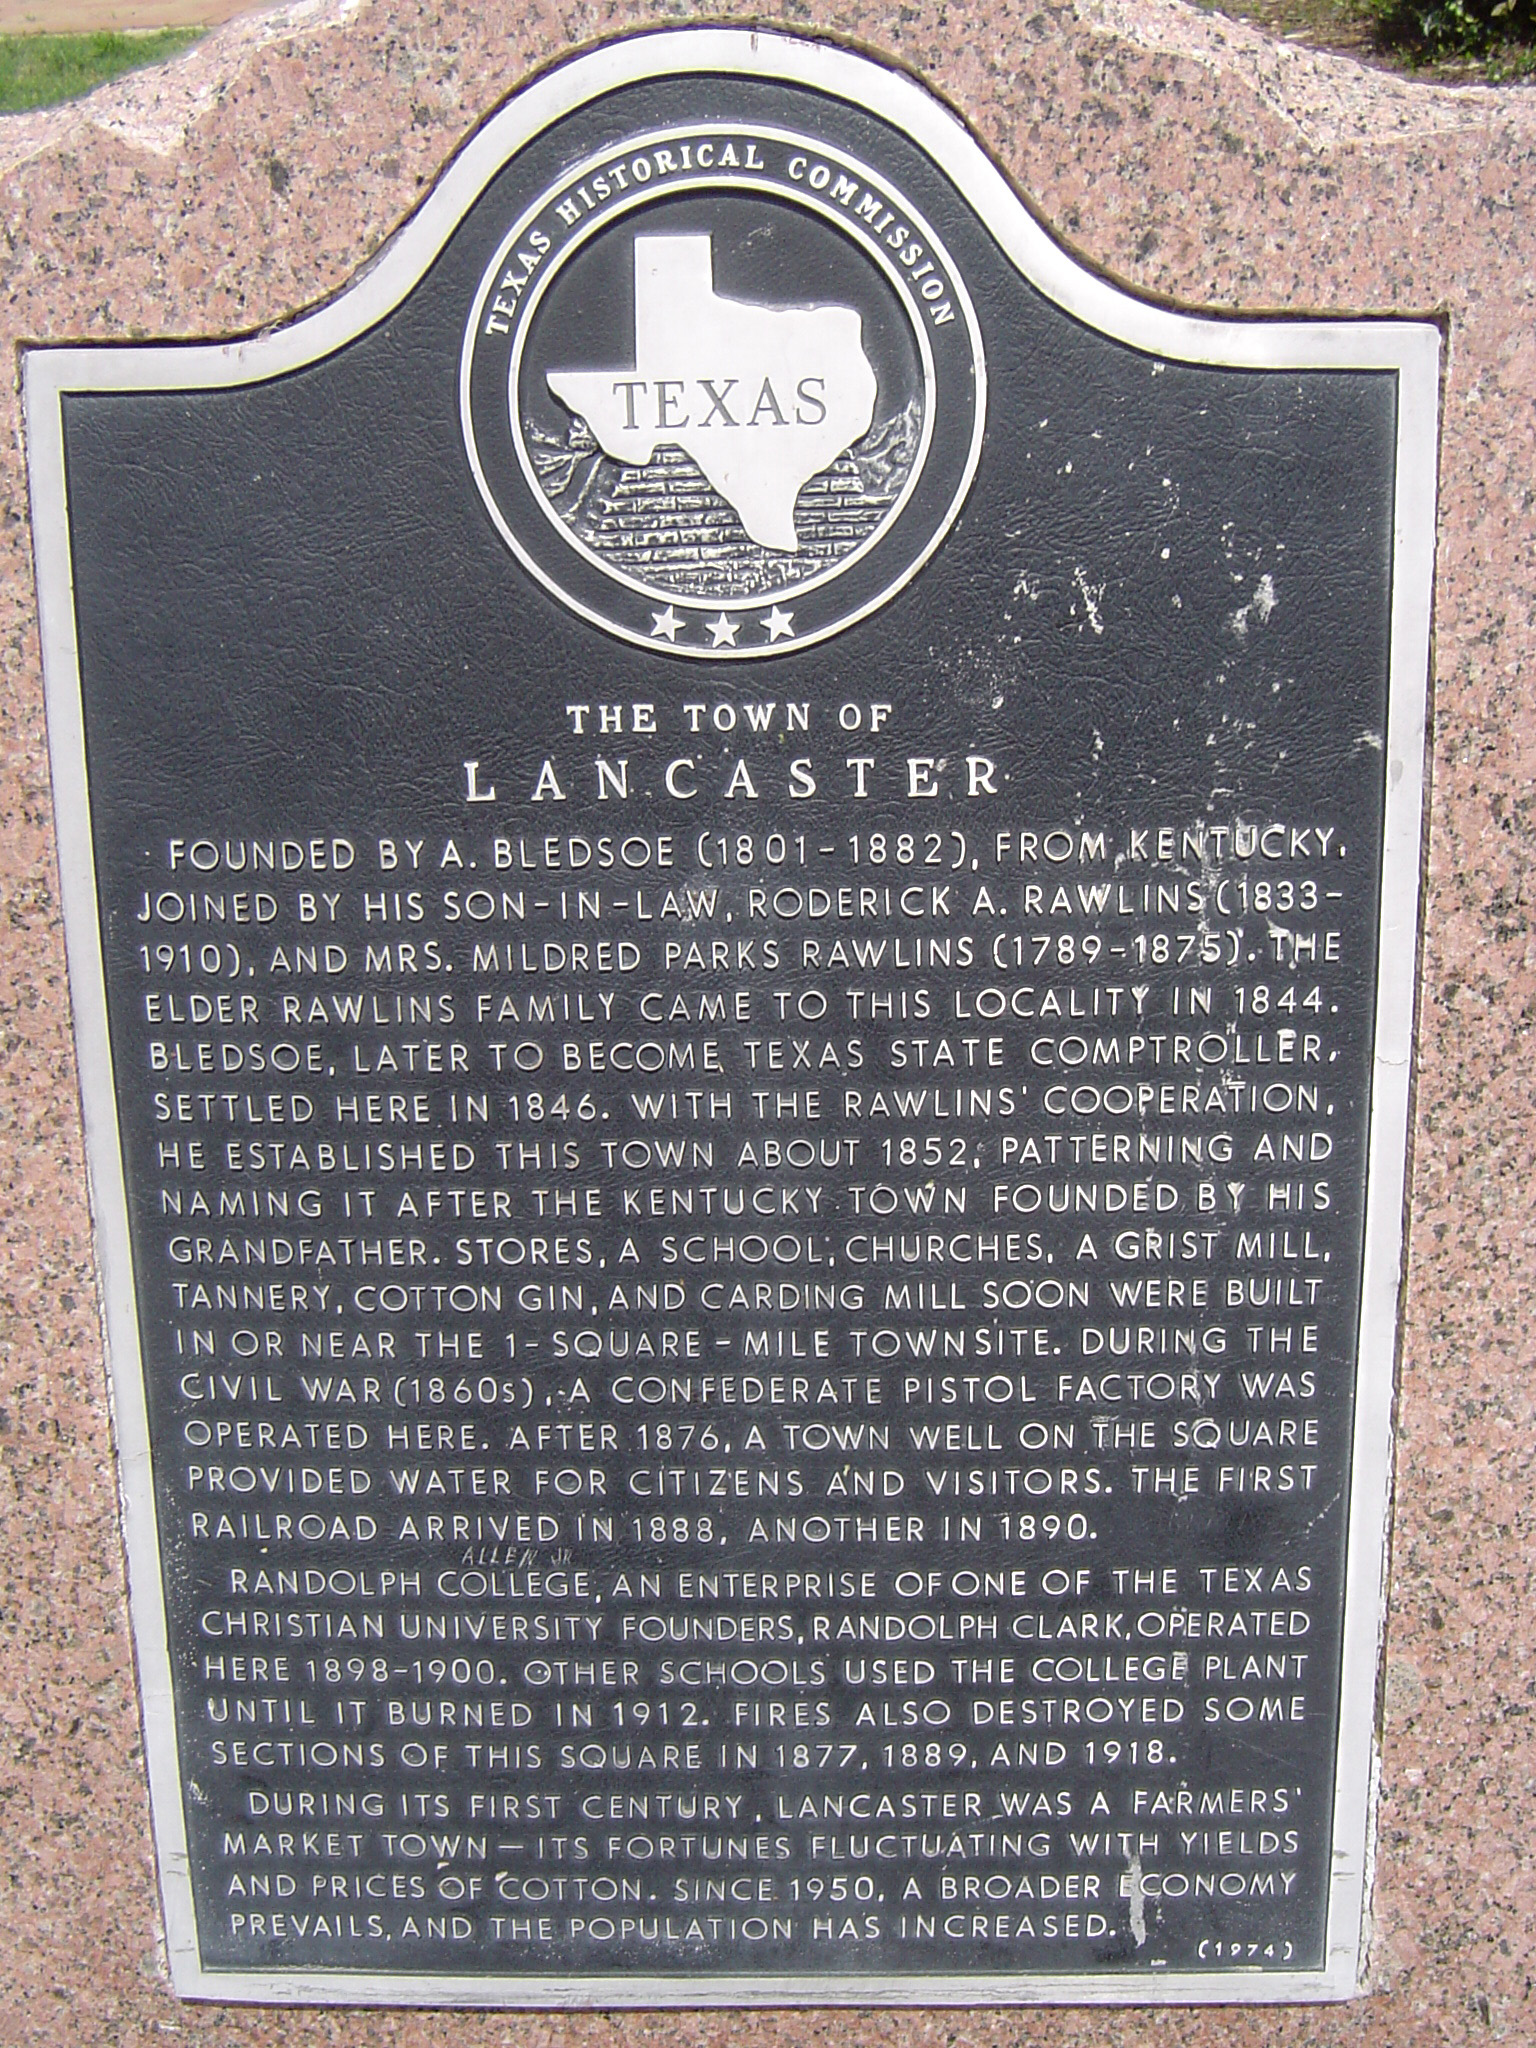 Informational plaque on the town of Lancaster, Texas, USA giving the history of its founding and expansion